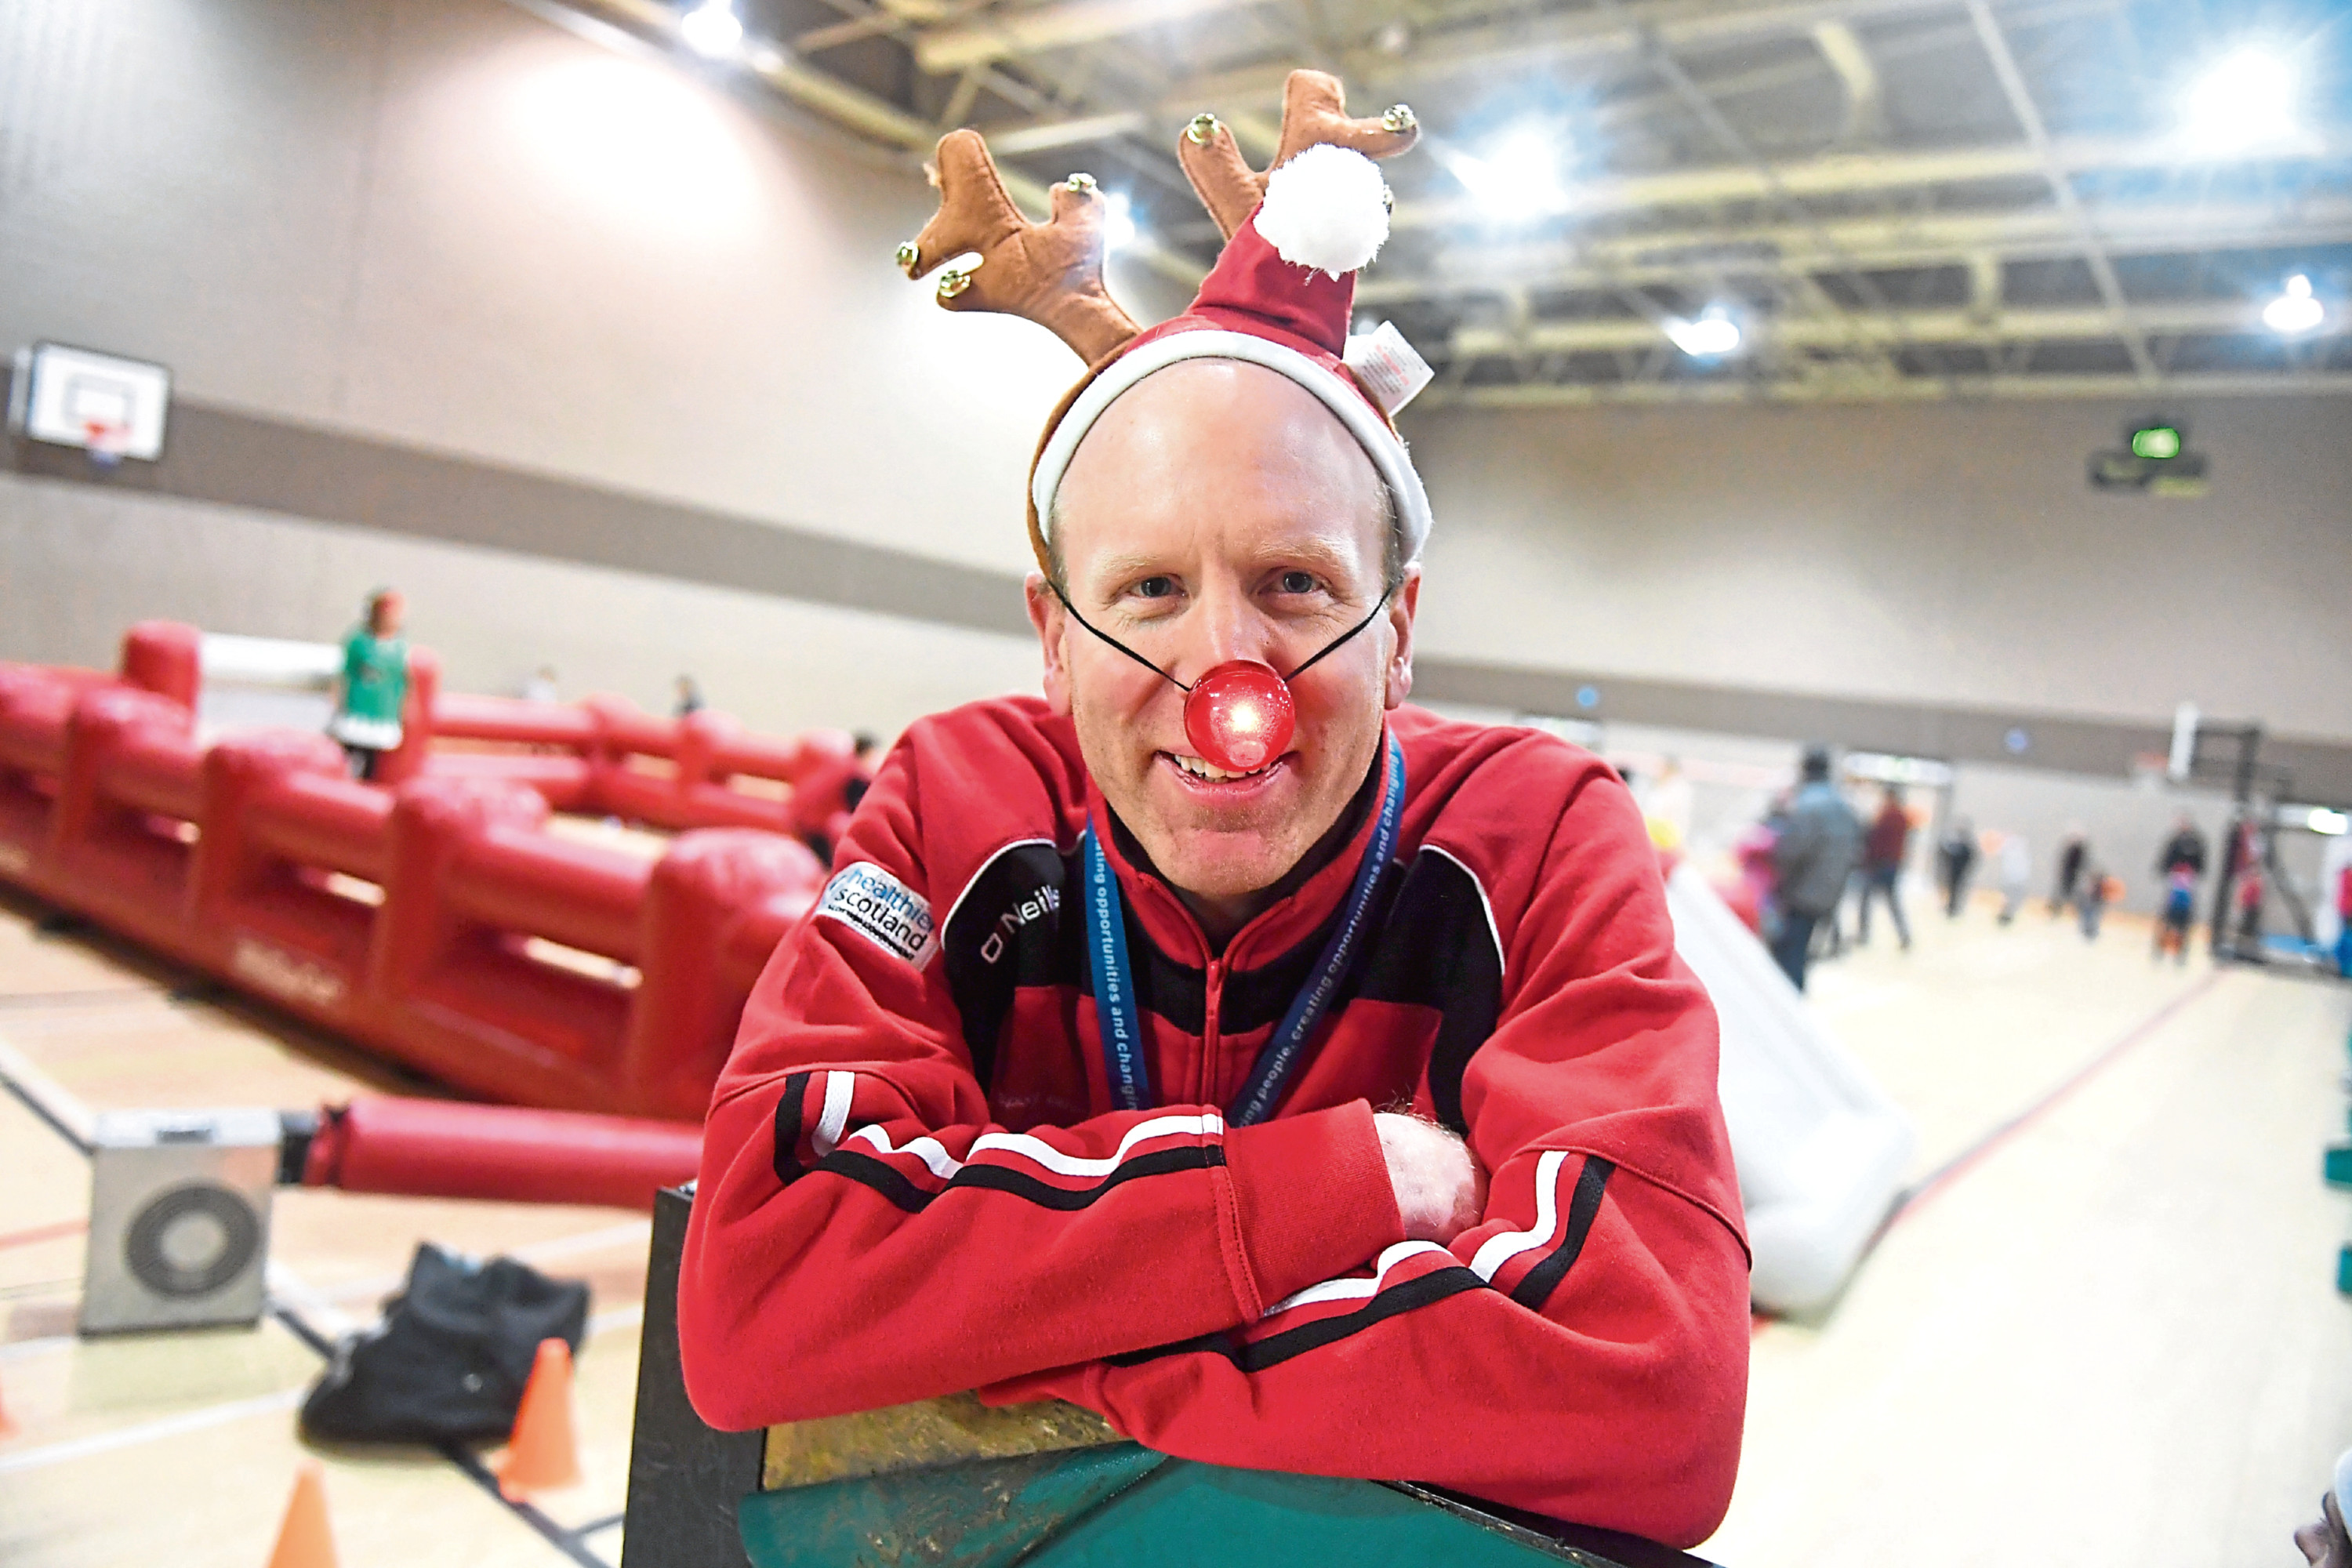 One of the party's organisers Graeme Tale takes a break away from the activities